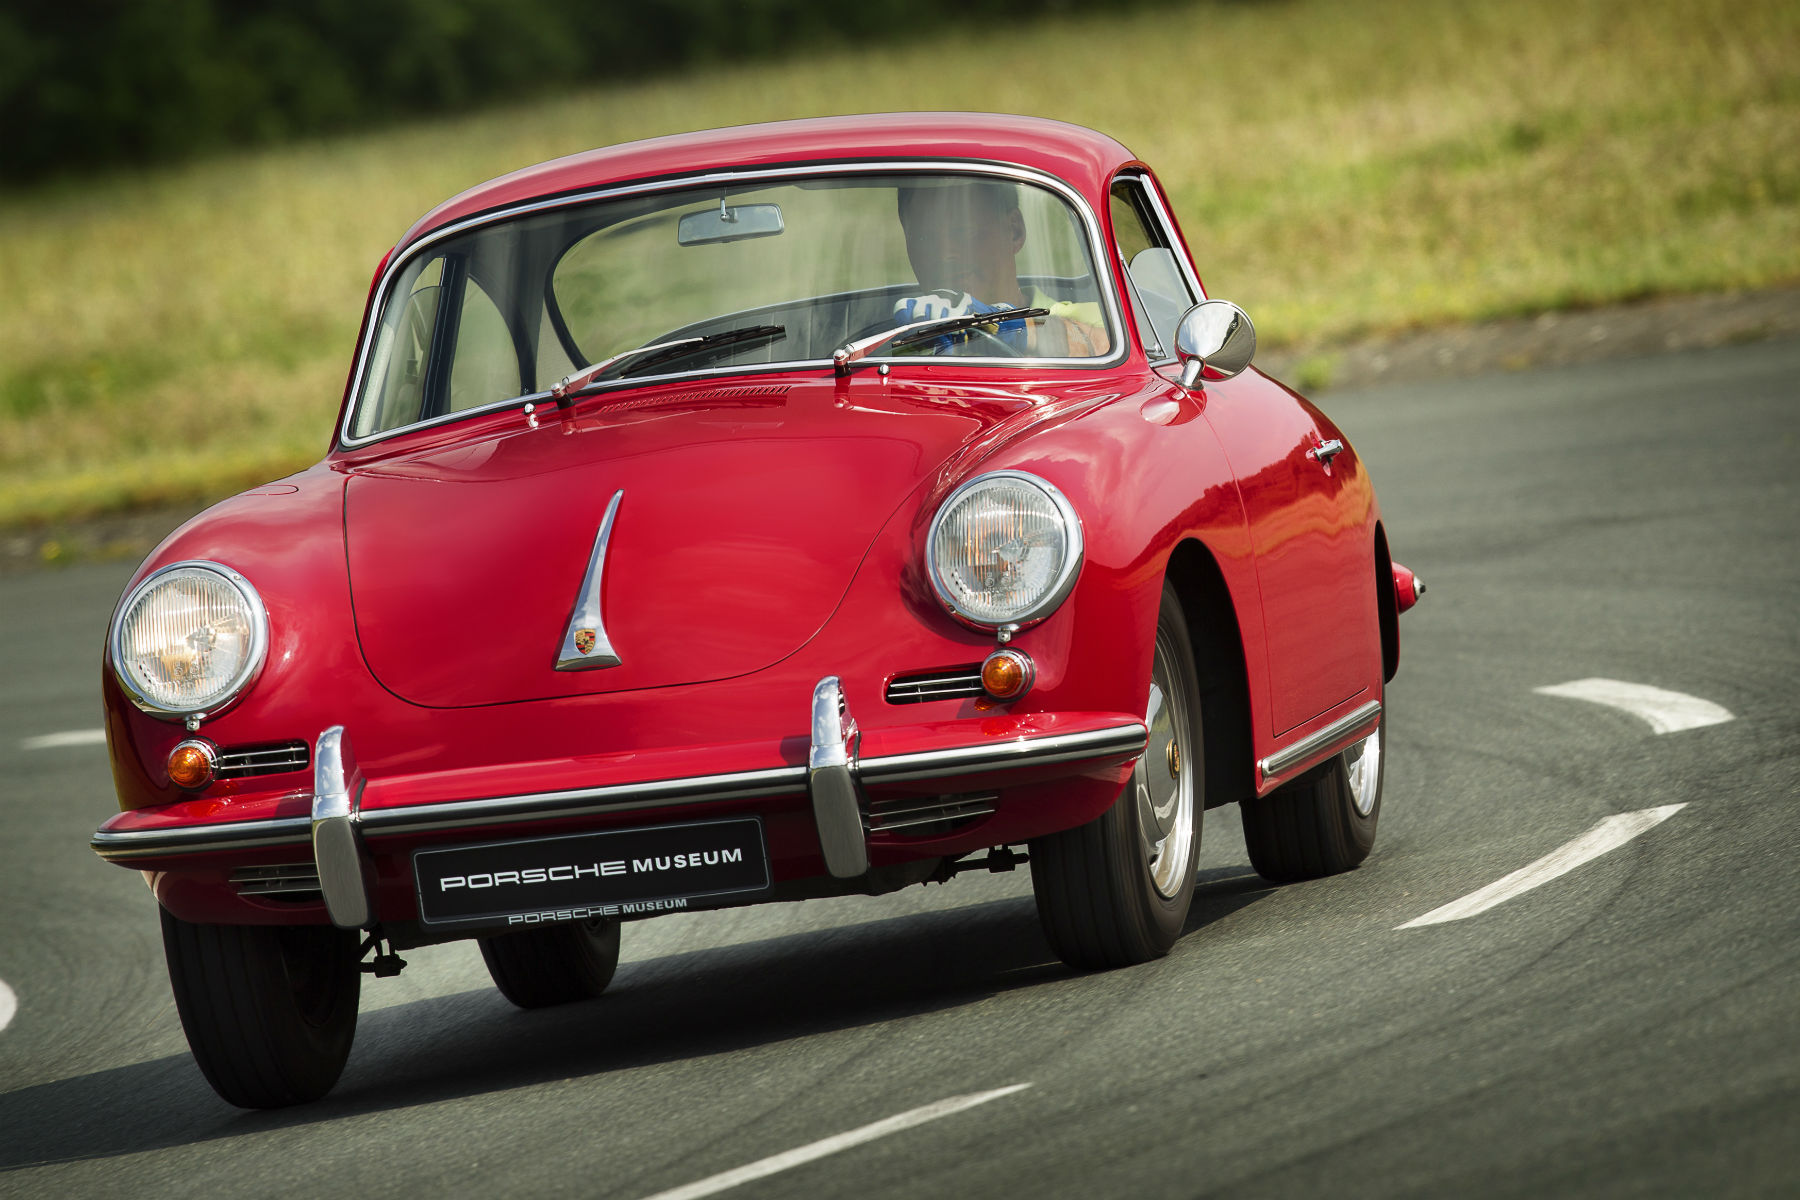 You can now 3D print rare parts for your classic Porsche